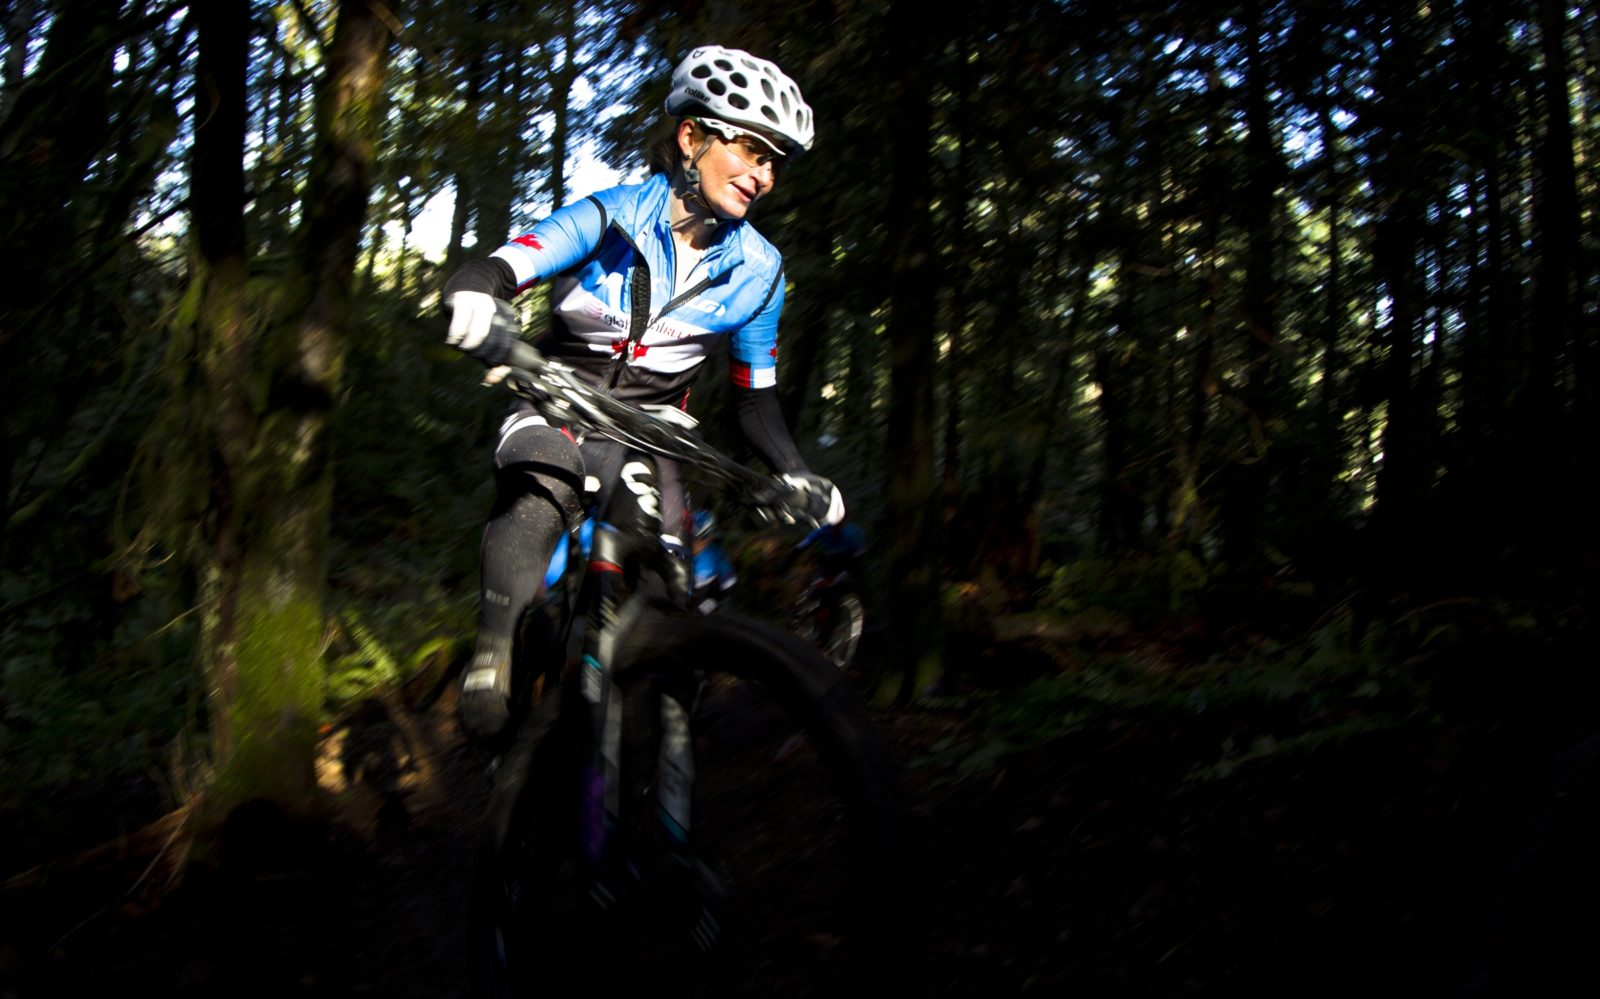 canadian-mountain-bike-team-feb-23-2015-kevinlightphoto_v0c8325